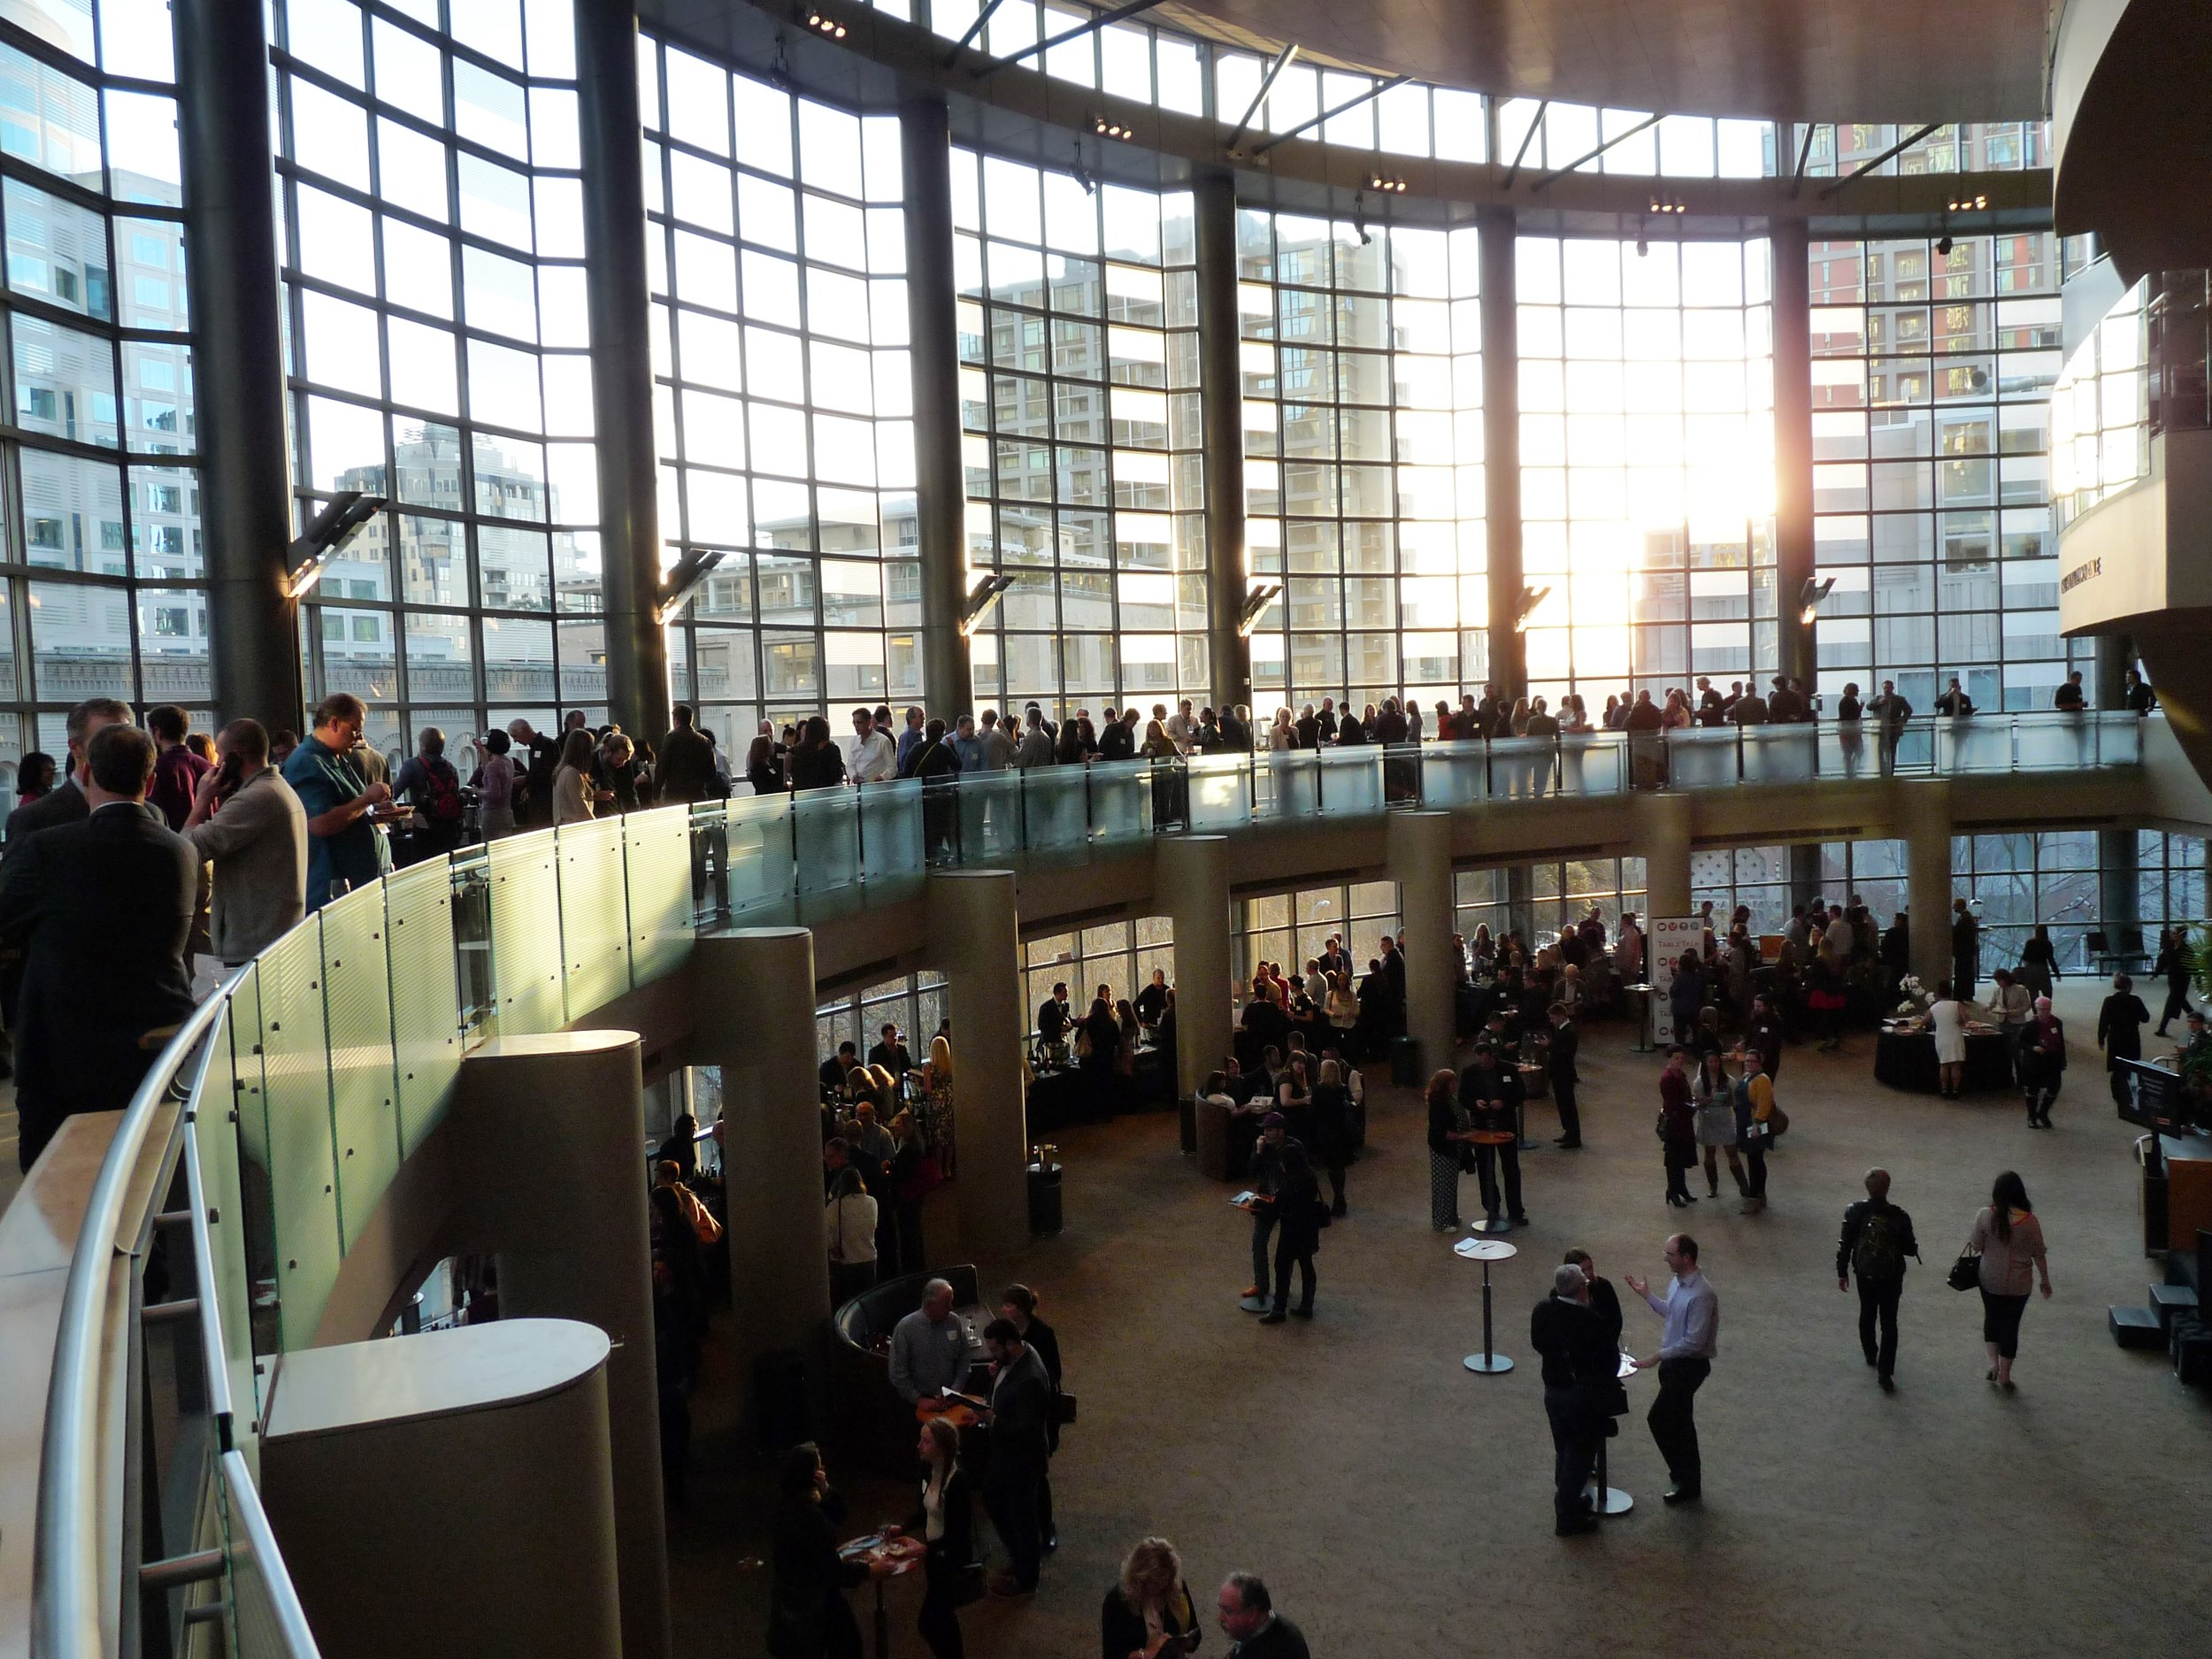 The sun shone on Benaroya Hall as 62 wineries poured over 220 wines at the Washington State Wine Awards.